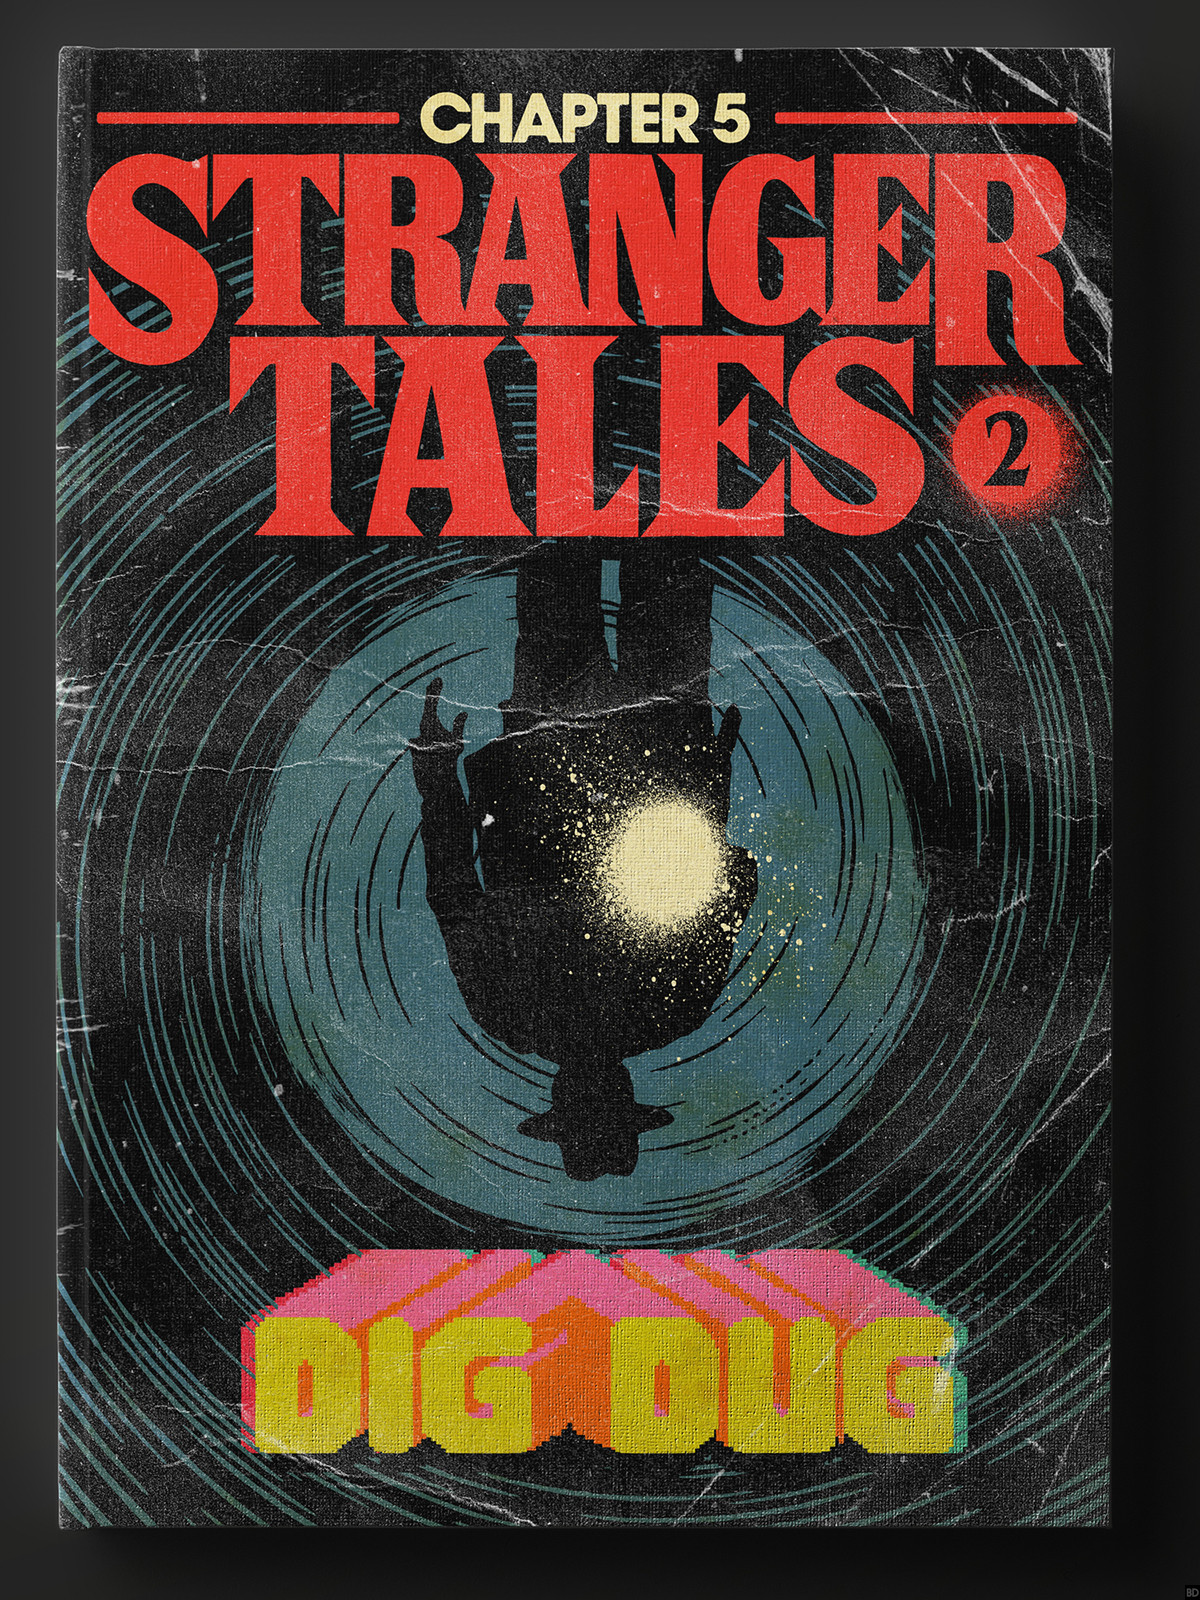 Book Cover Protector : Artist makes retro book covers for quot stranger things